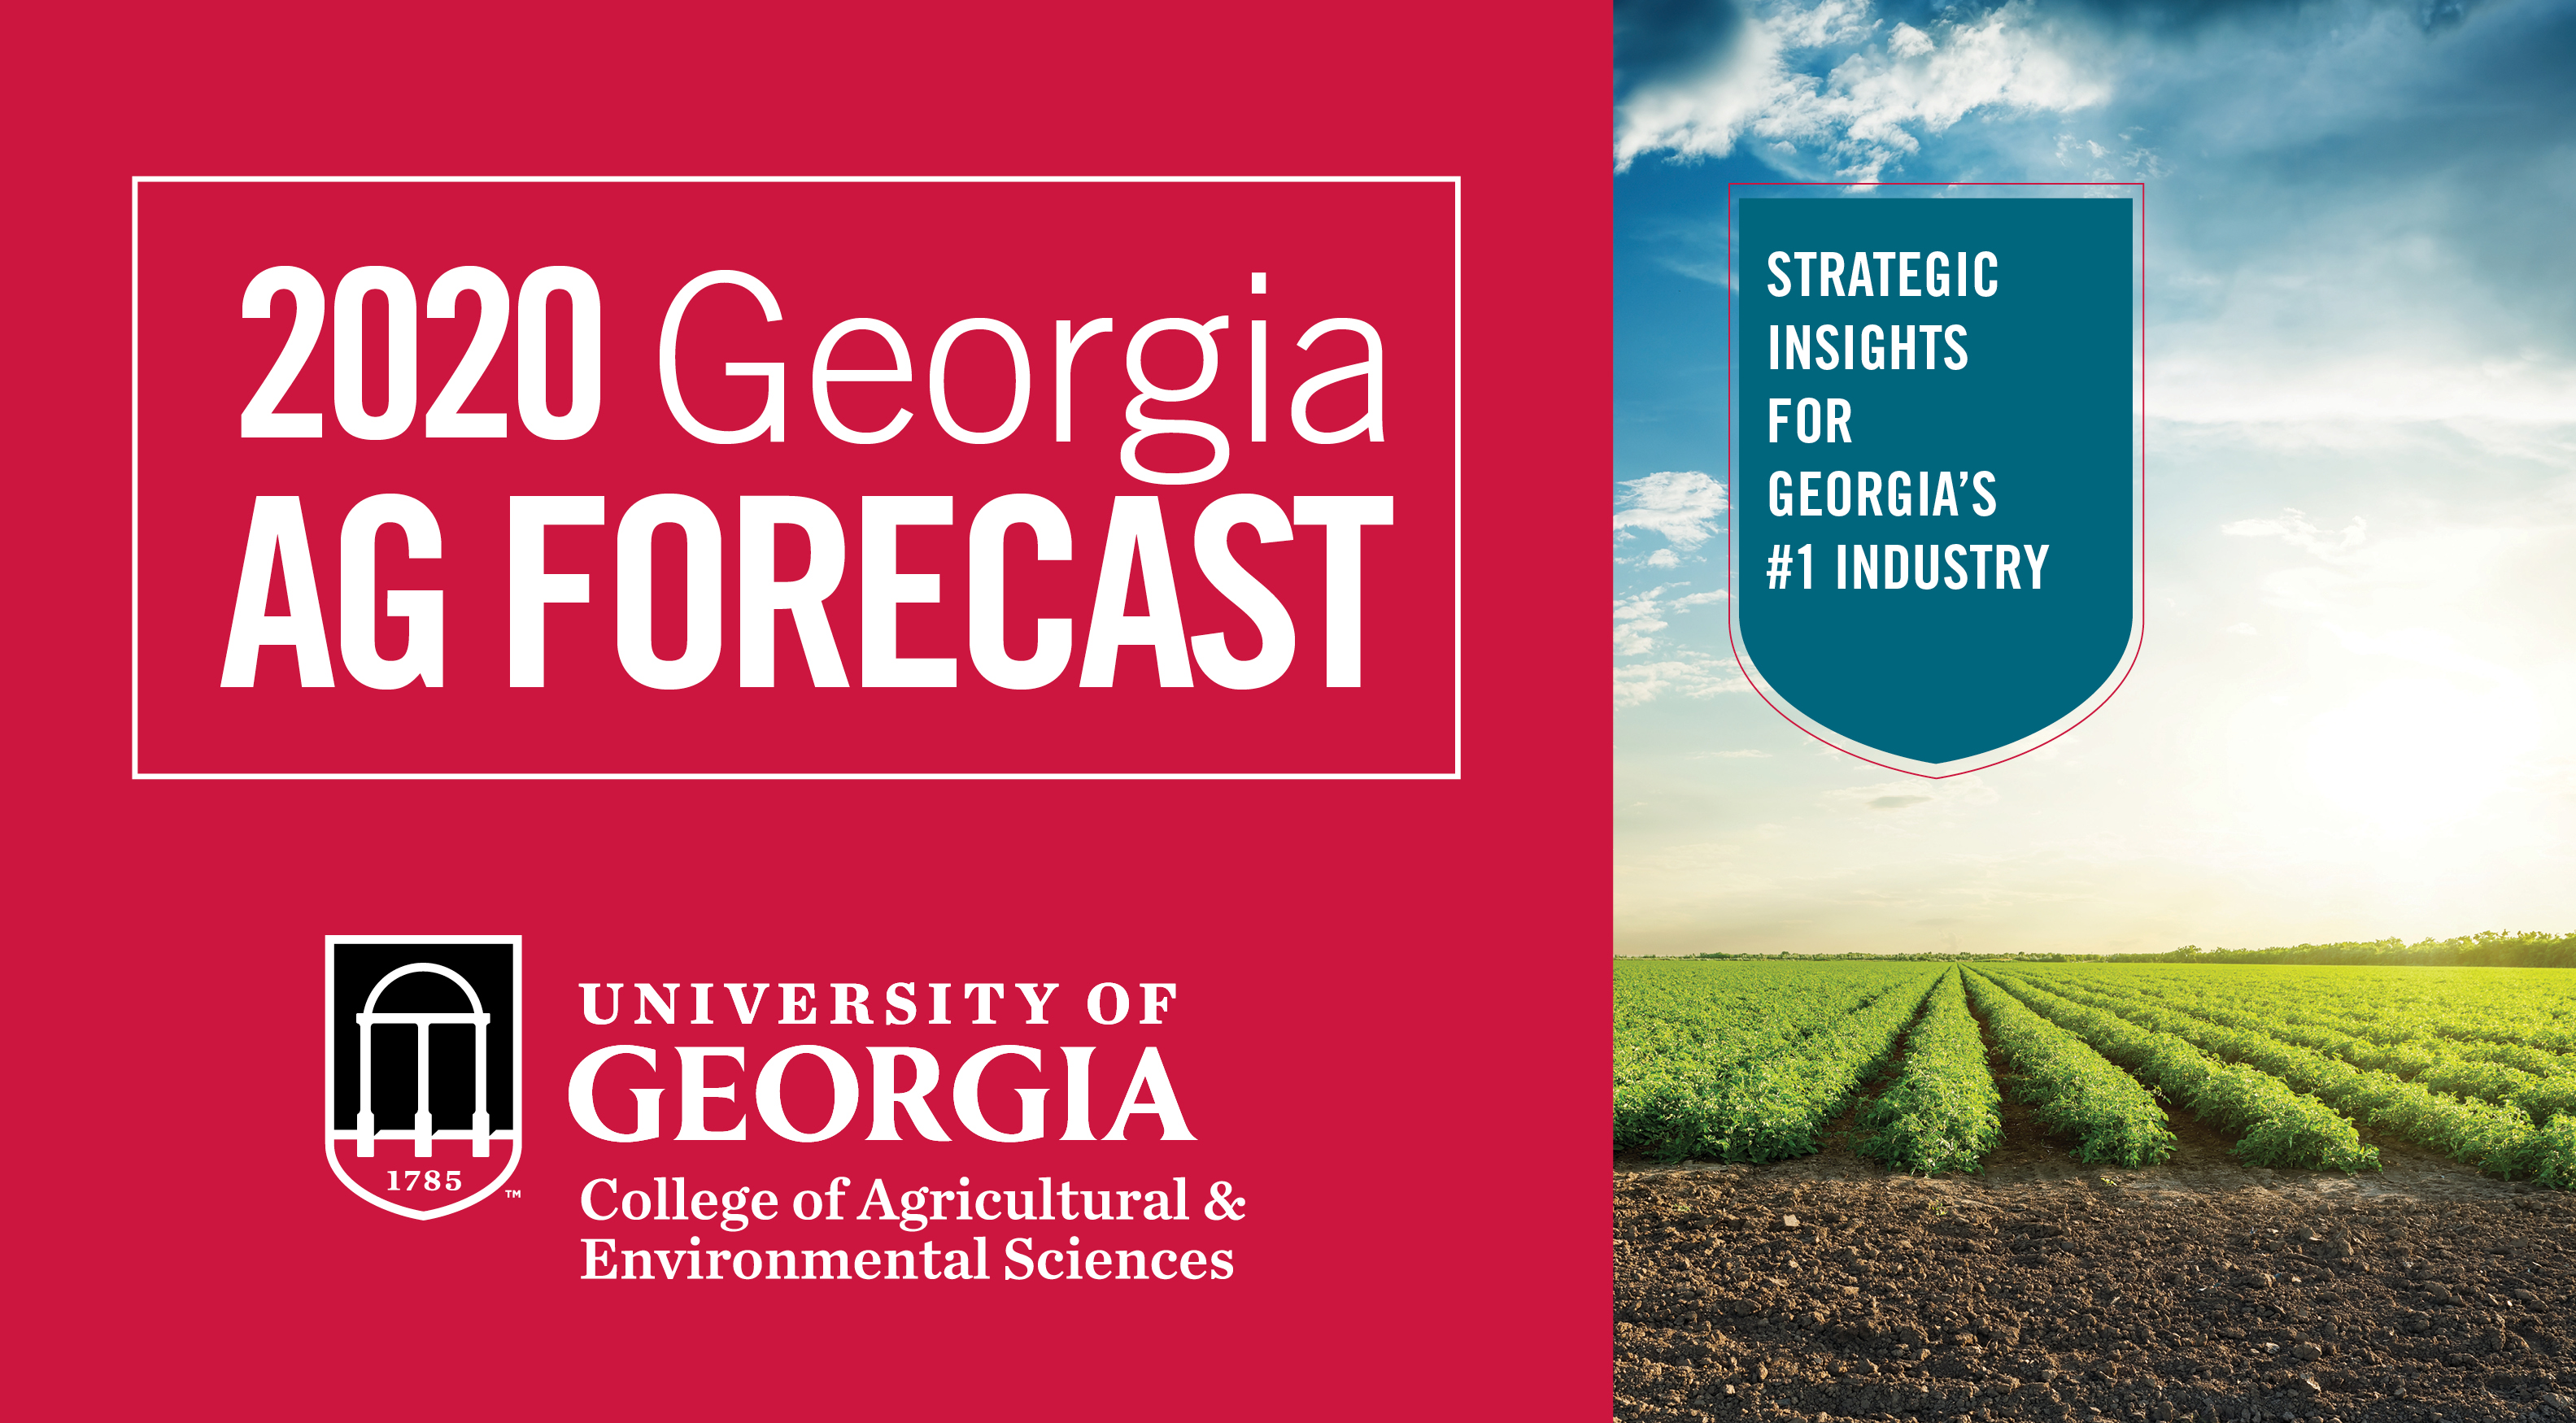 Our annual seminar series shares the latest research and information from UGA faculty to help Georgia farmers and agribusinesses.